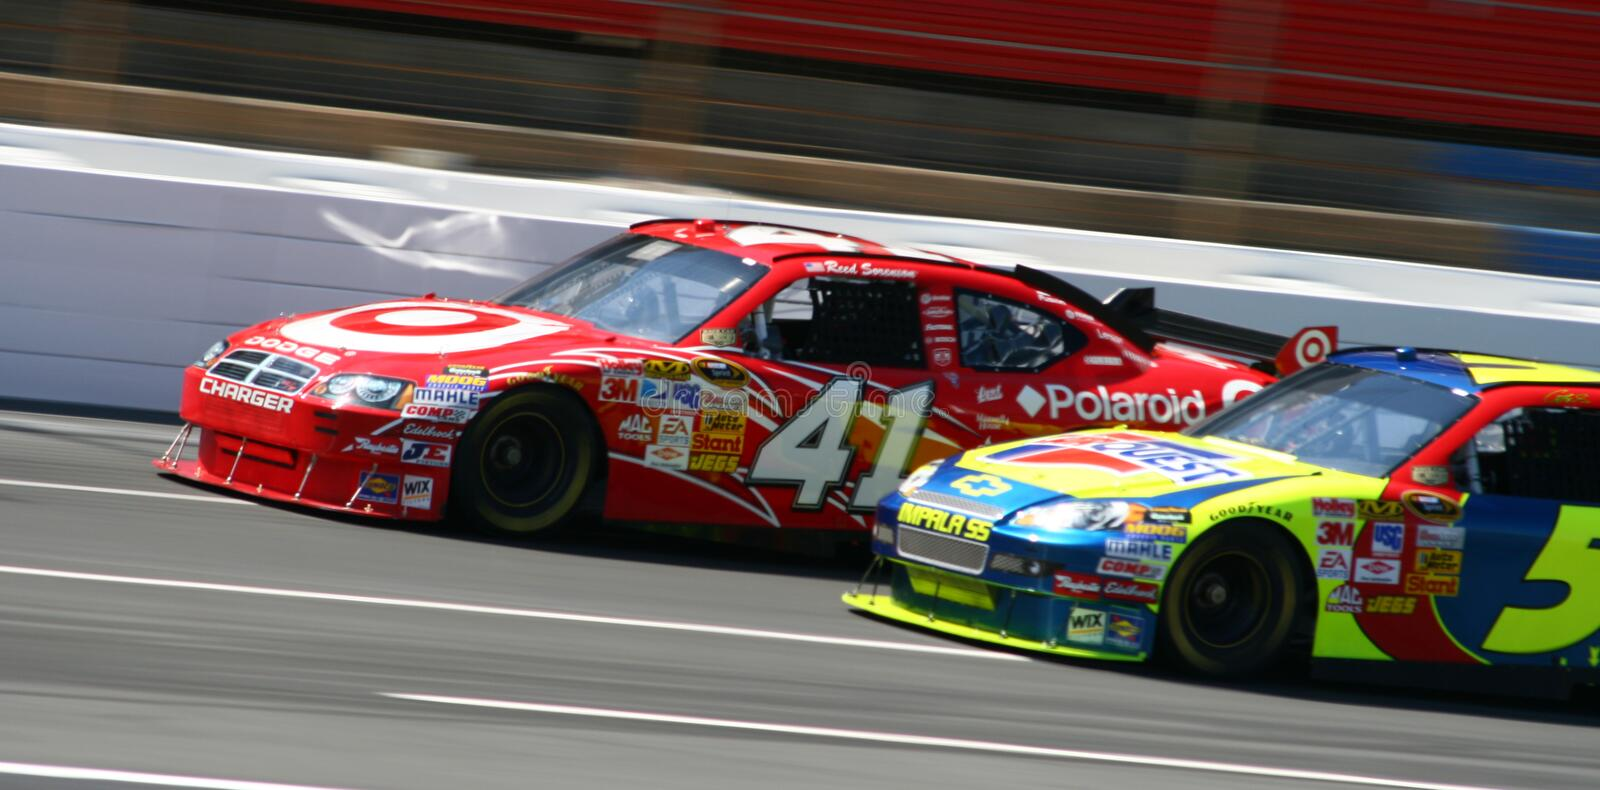 NASCAR - Wheel to Wheel Racing!. Reed Soreson's #41 Target Dodge Car of Tomorrow edges ahead of Casey Mears' #5 Chevy COT during practice for the 2008 NASCAR